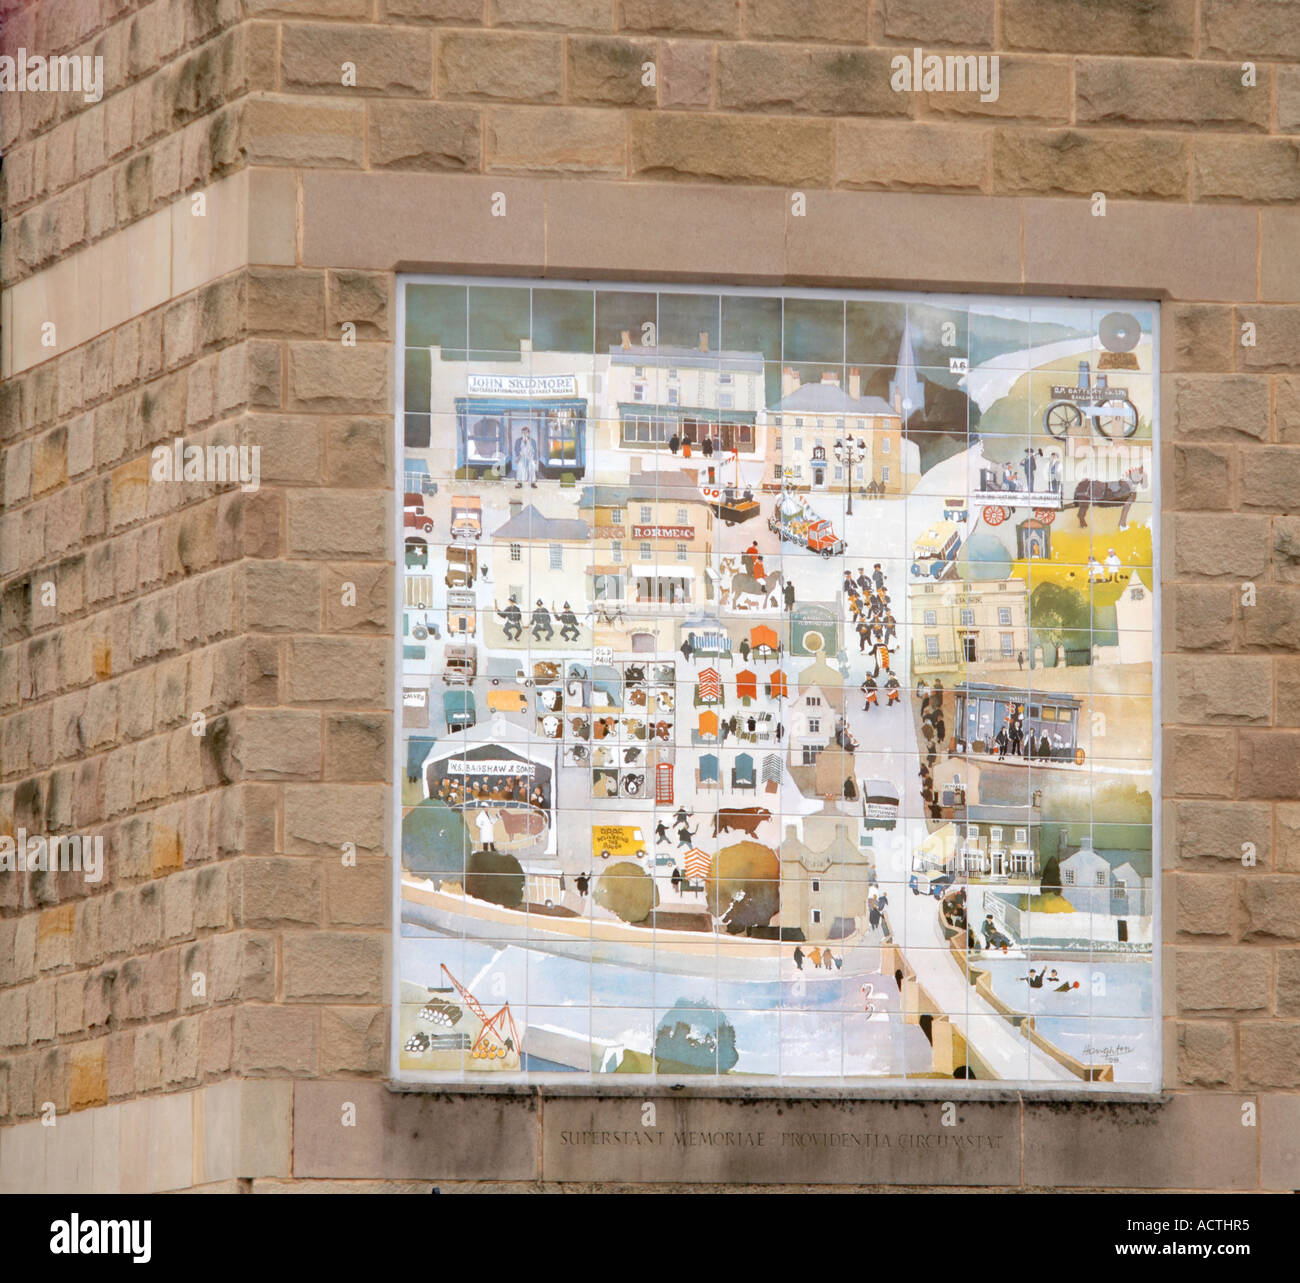 Tiled map of Bakewell found in Bakewell  in Derbyshire 'Great Britain' - Stock Image